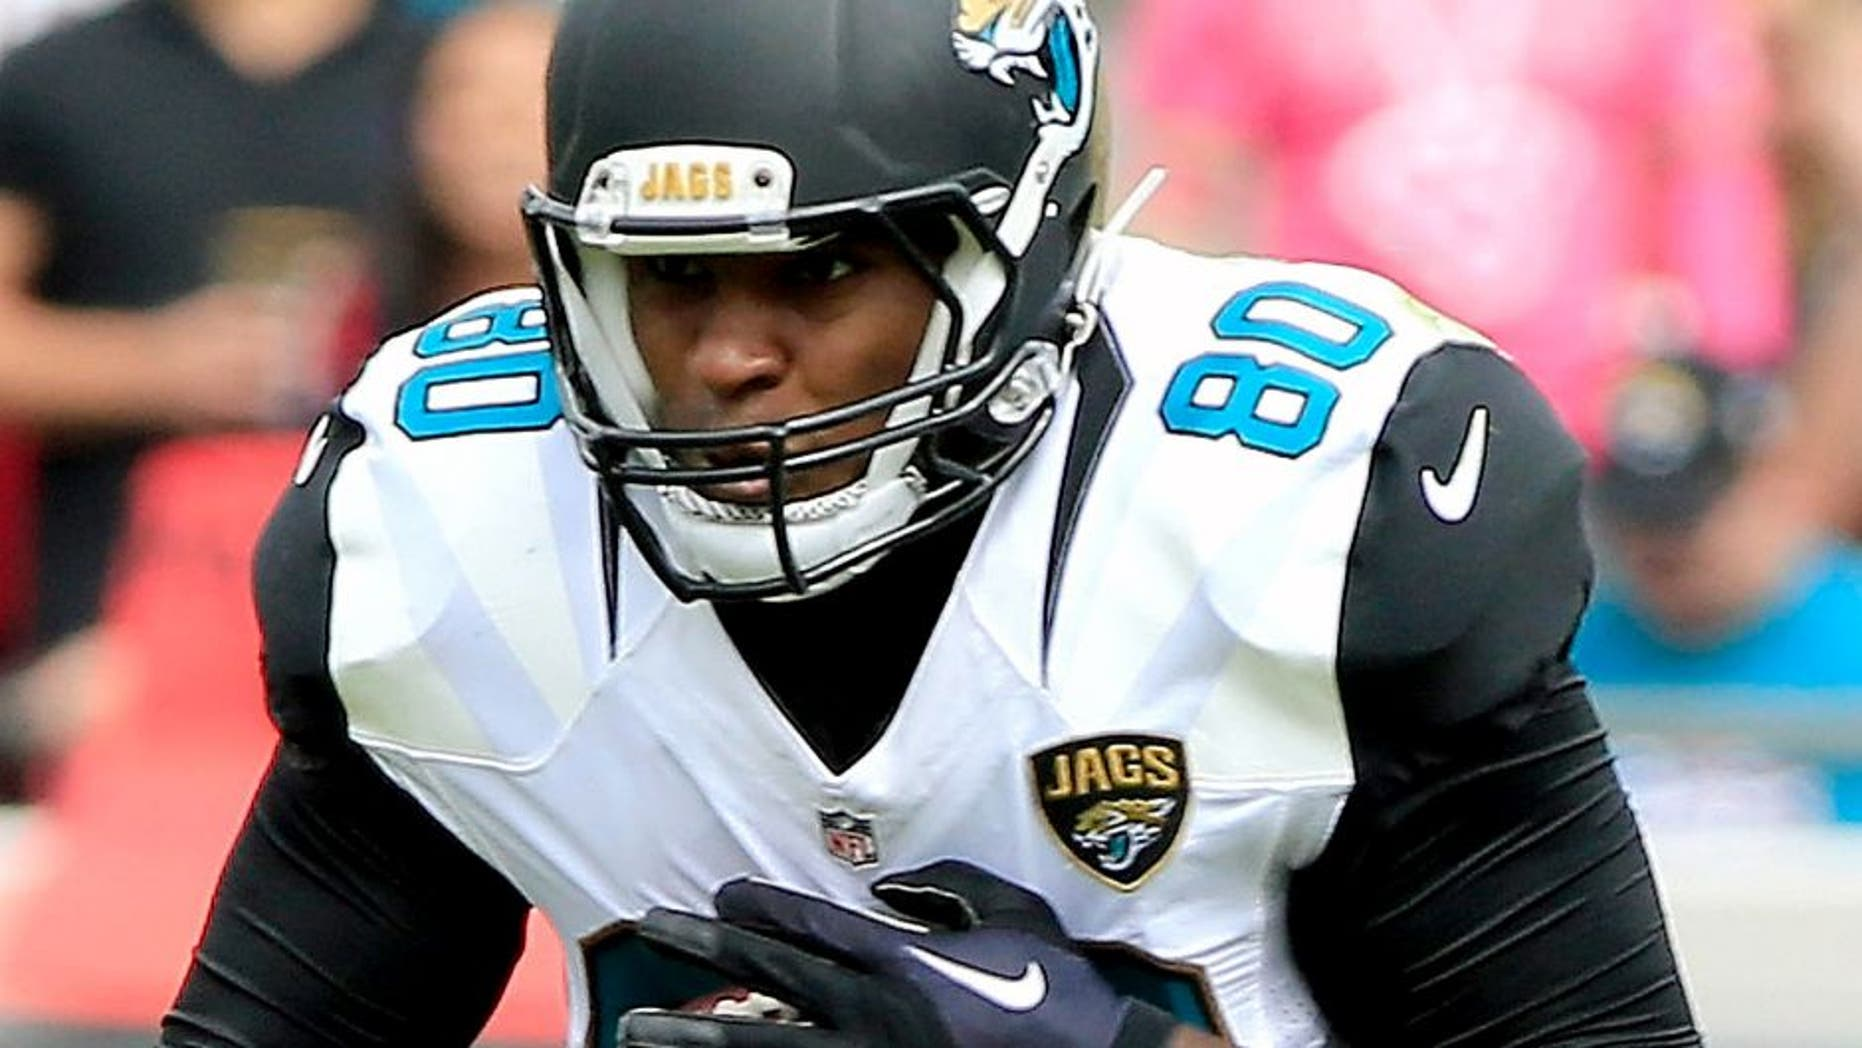 JACKSONVILLE, FL - OCTOBER 18: Julius Thomas #80 of the Jacksonville Jaguars makes a reception against Kevin Johnson #30 of the Houston Texans during the game at EverBank Field on October 18, 2015 in Jacksonville, Florida. (Photo by Sam Greenwood/Getty Images)